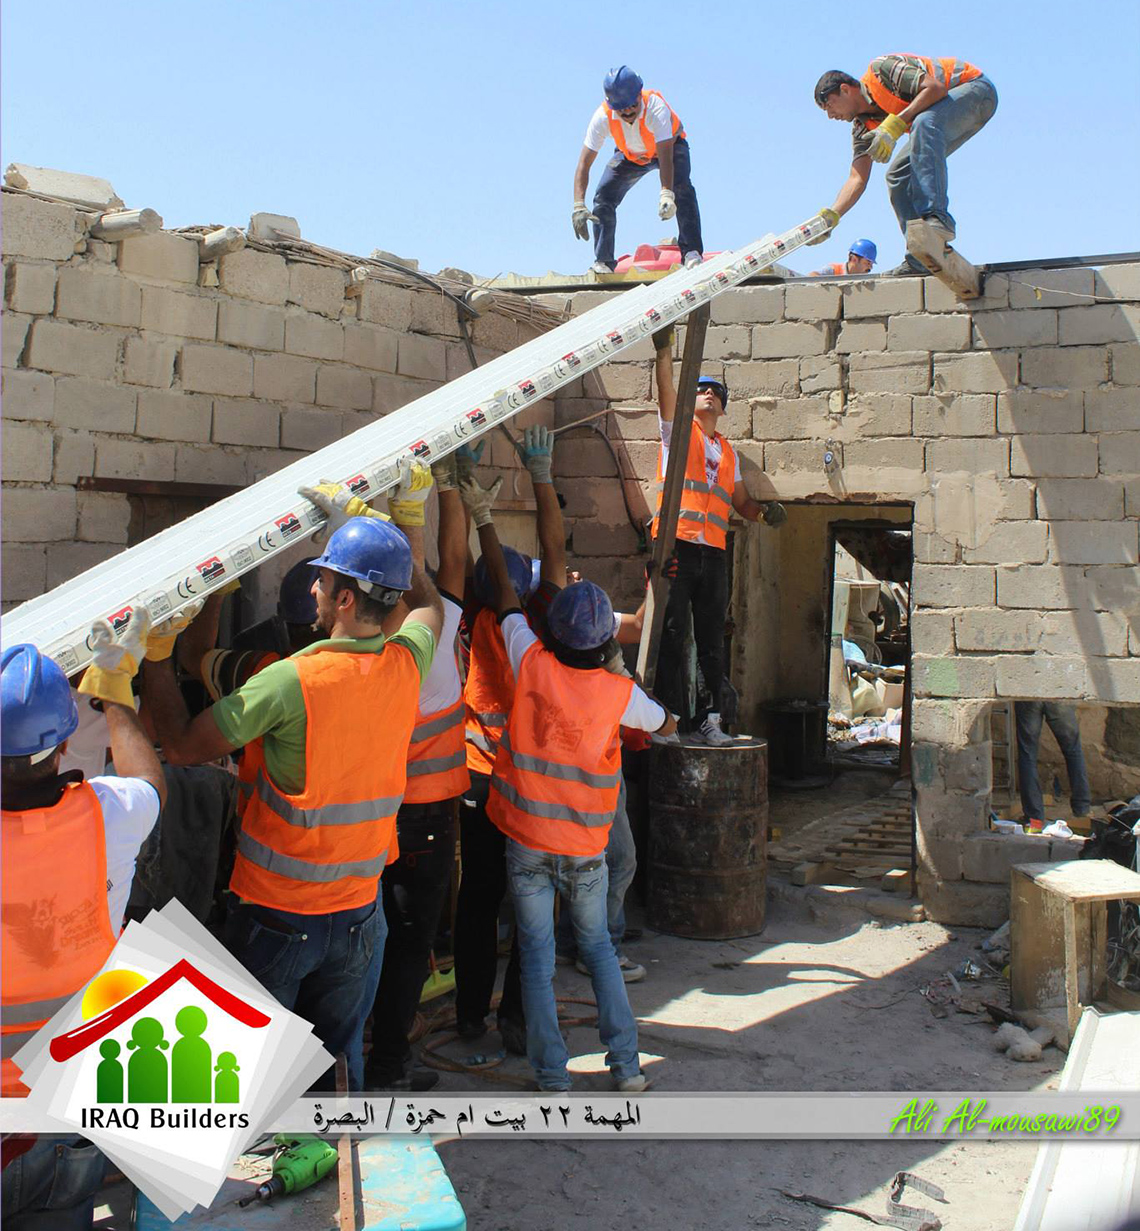 A team from Iraq Builders puts a new roof on a bombed-out home in Basrah, Iraq last August. Photo: Courtesy of Iraq Builders